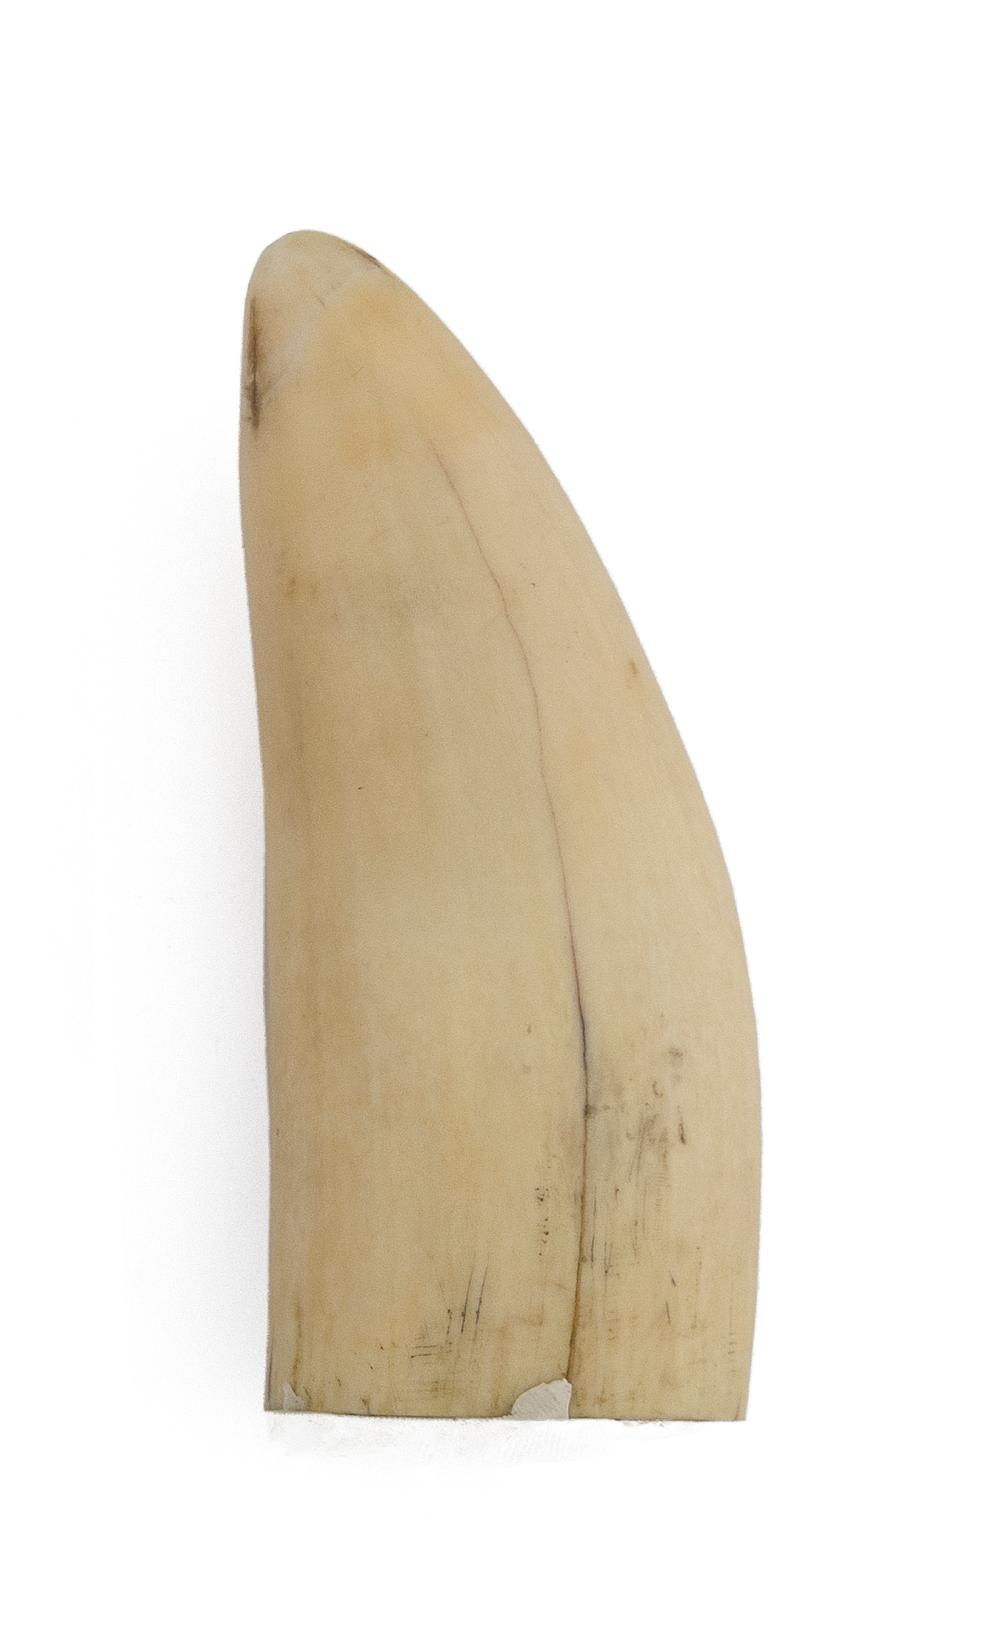 * ENGRAVED WHALE'S TOOTH WITH MARITIME MOTIFS Depicts a harpoon above a portrait of a ship contained within a decorative rectangular..